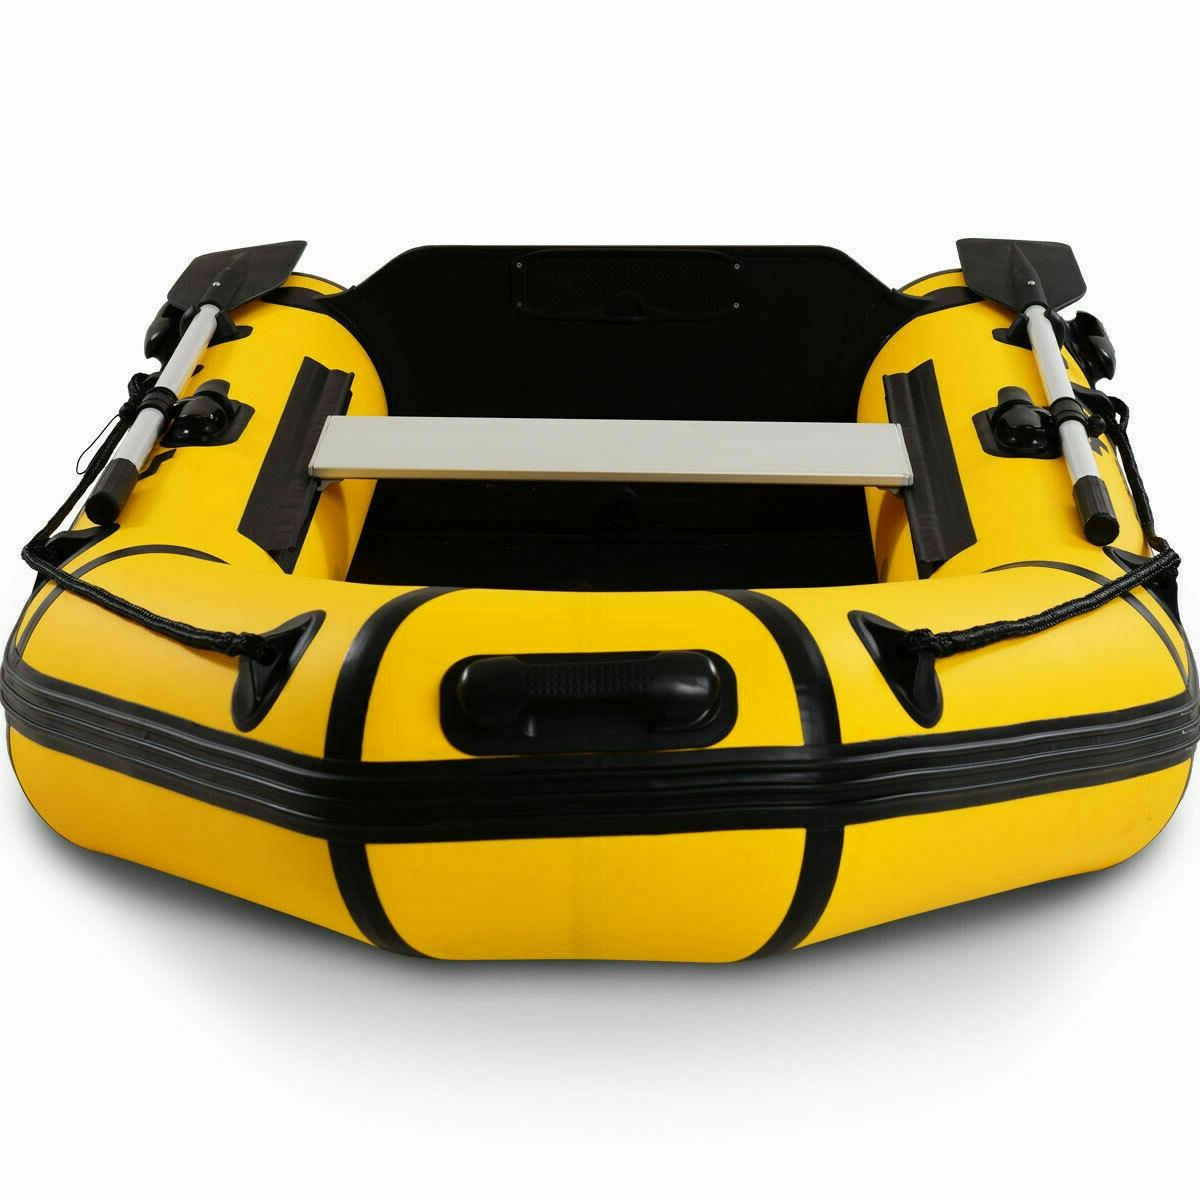 Inflatable Person Dinghy Boat 7.5 ft Pump